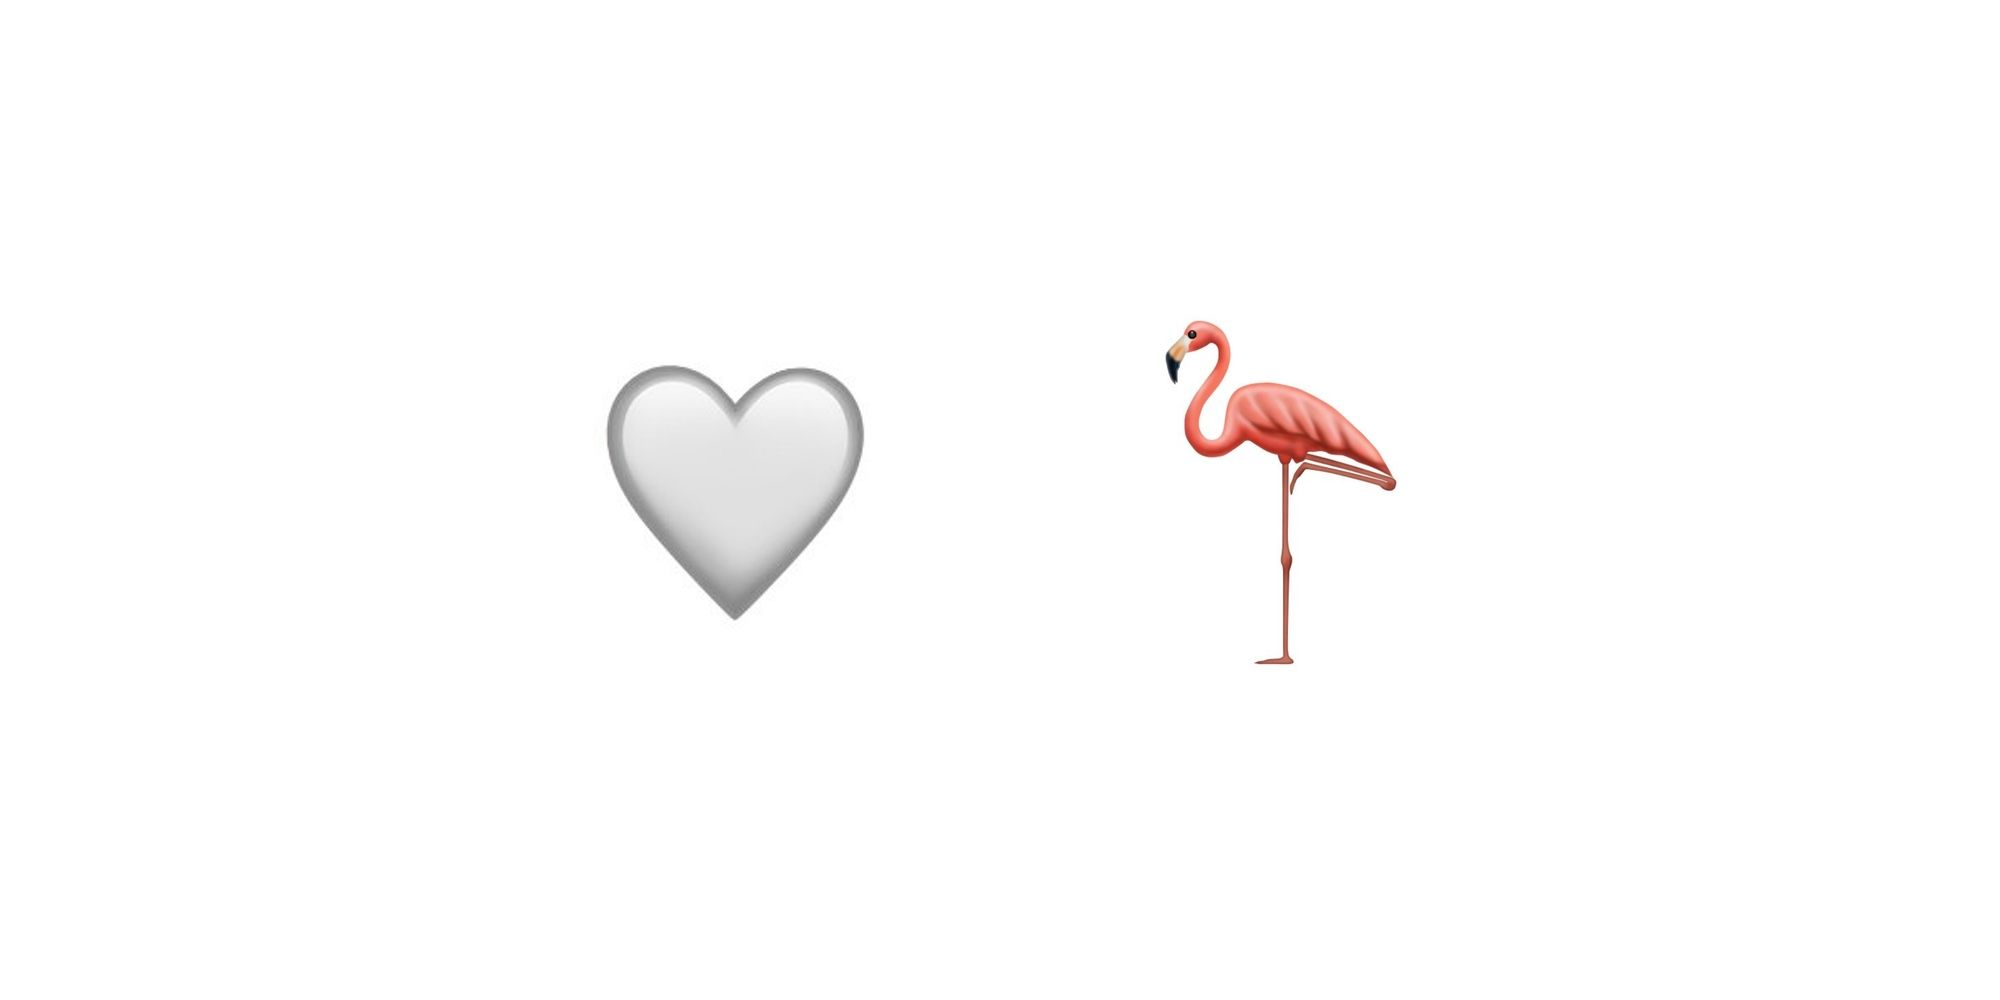 White Heart, Flamingo Added As Emoji Candidates